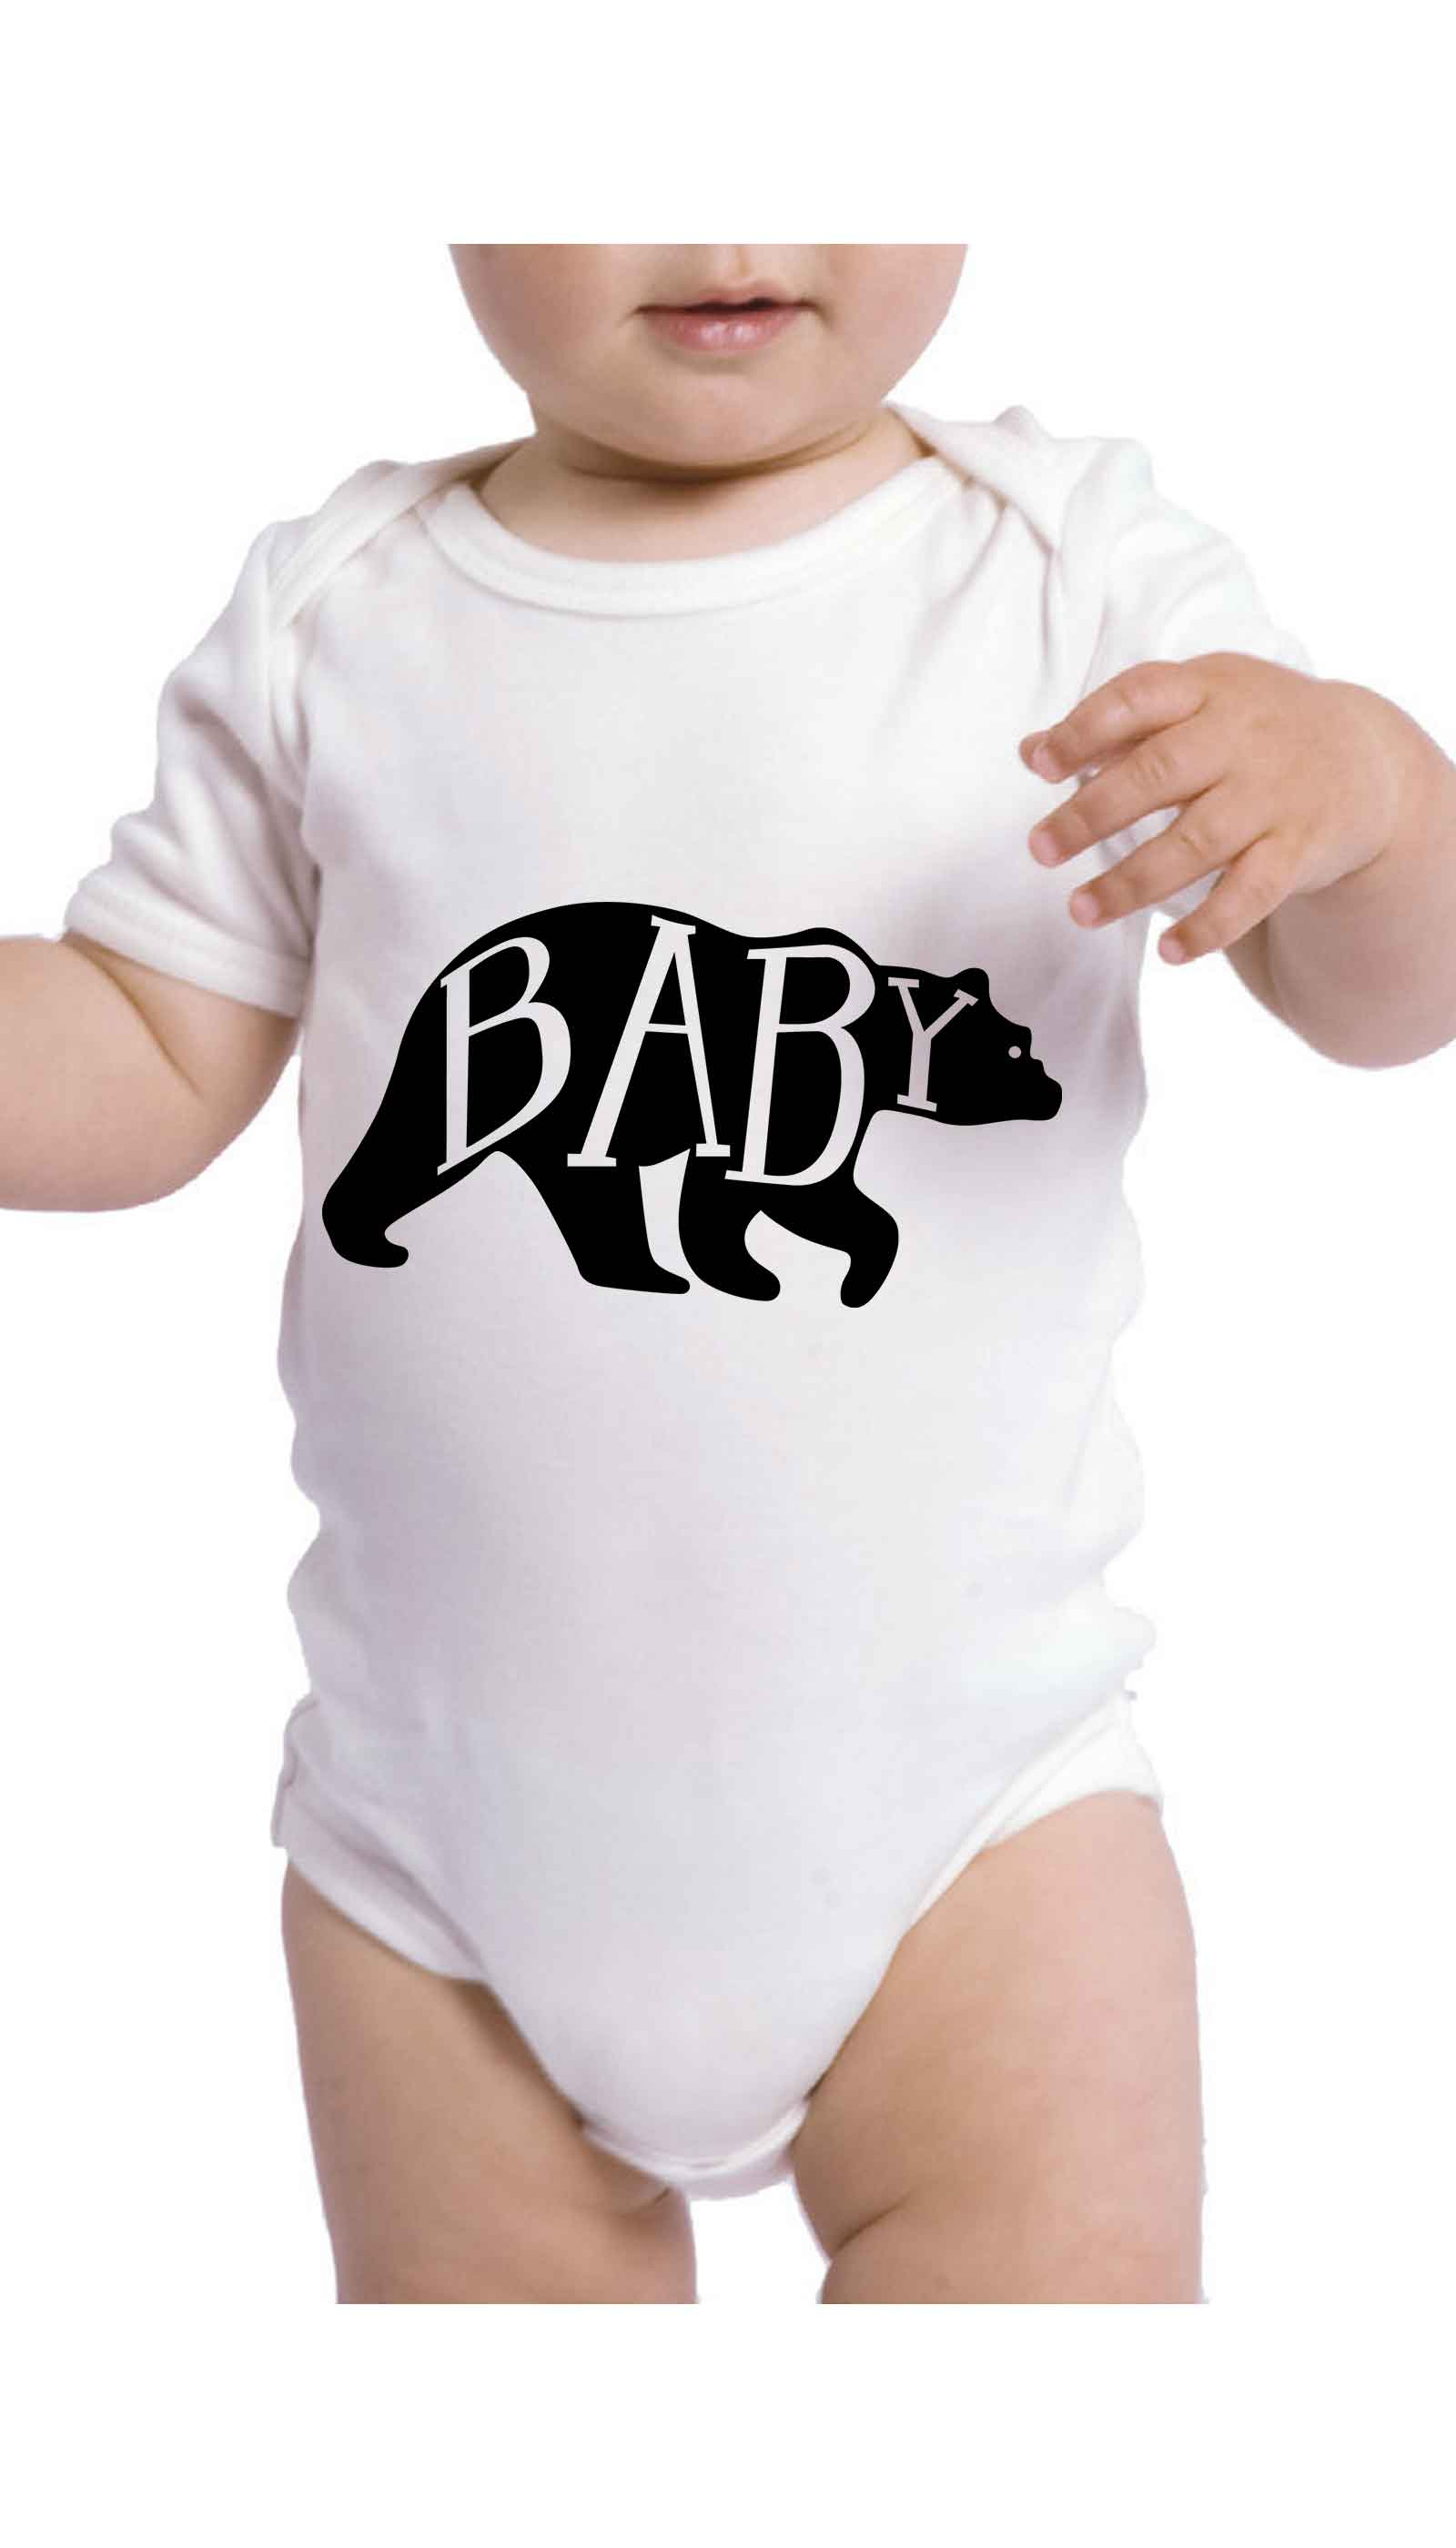 Baby Bear Cute & Funny Baby Infant Onesie